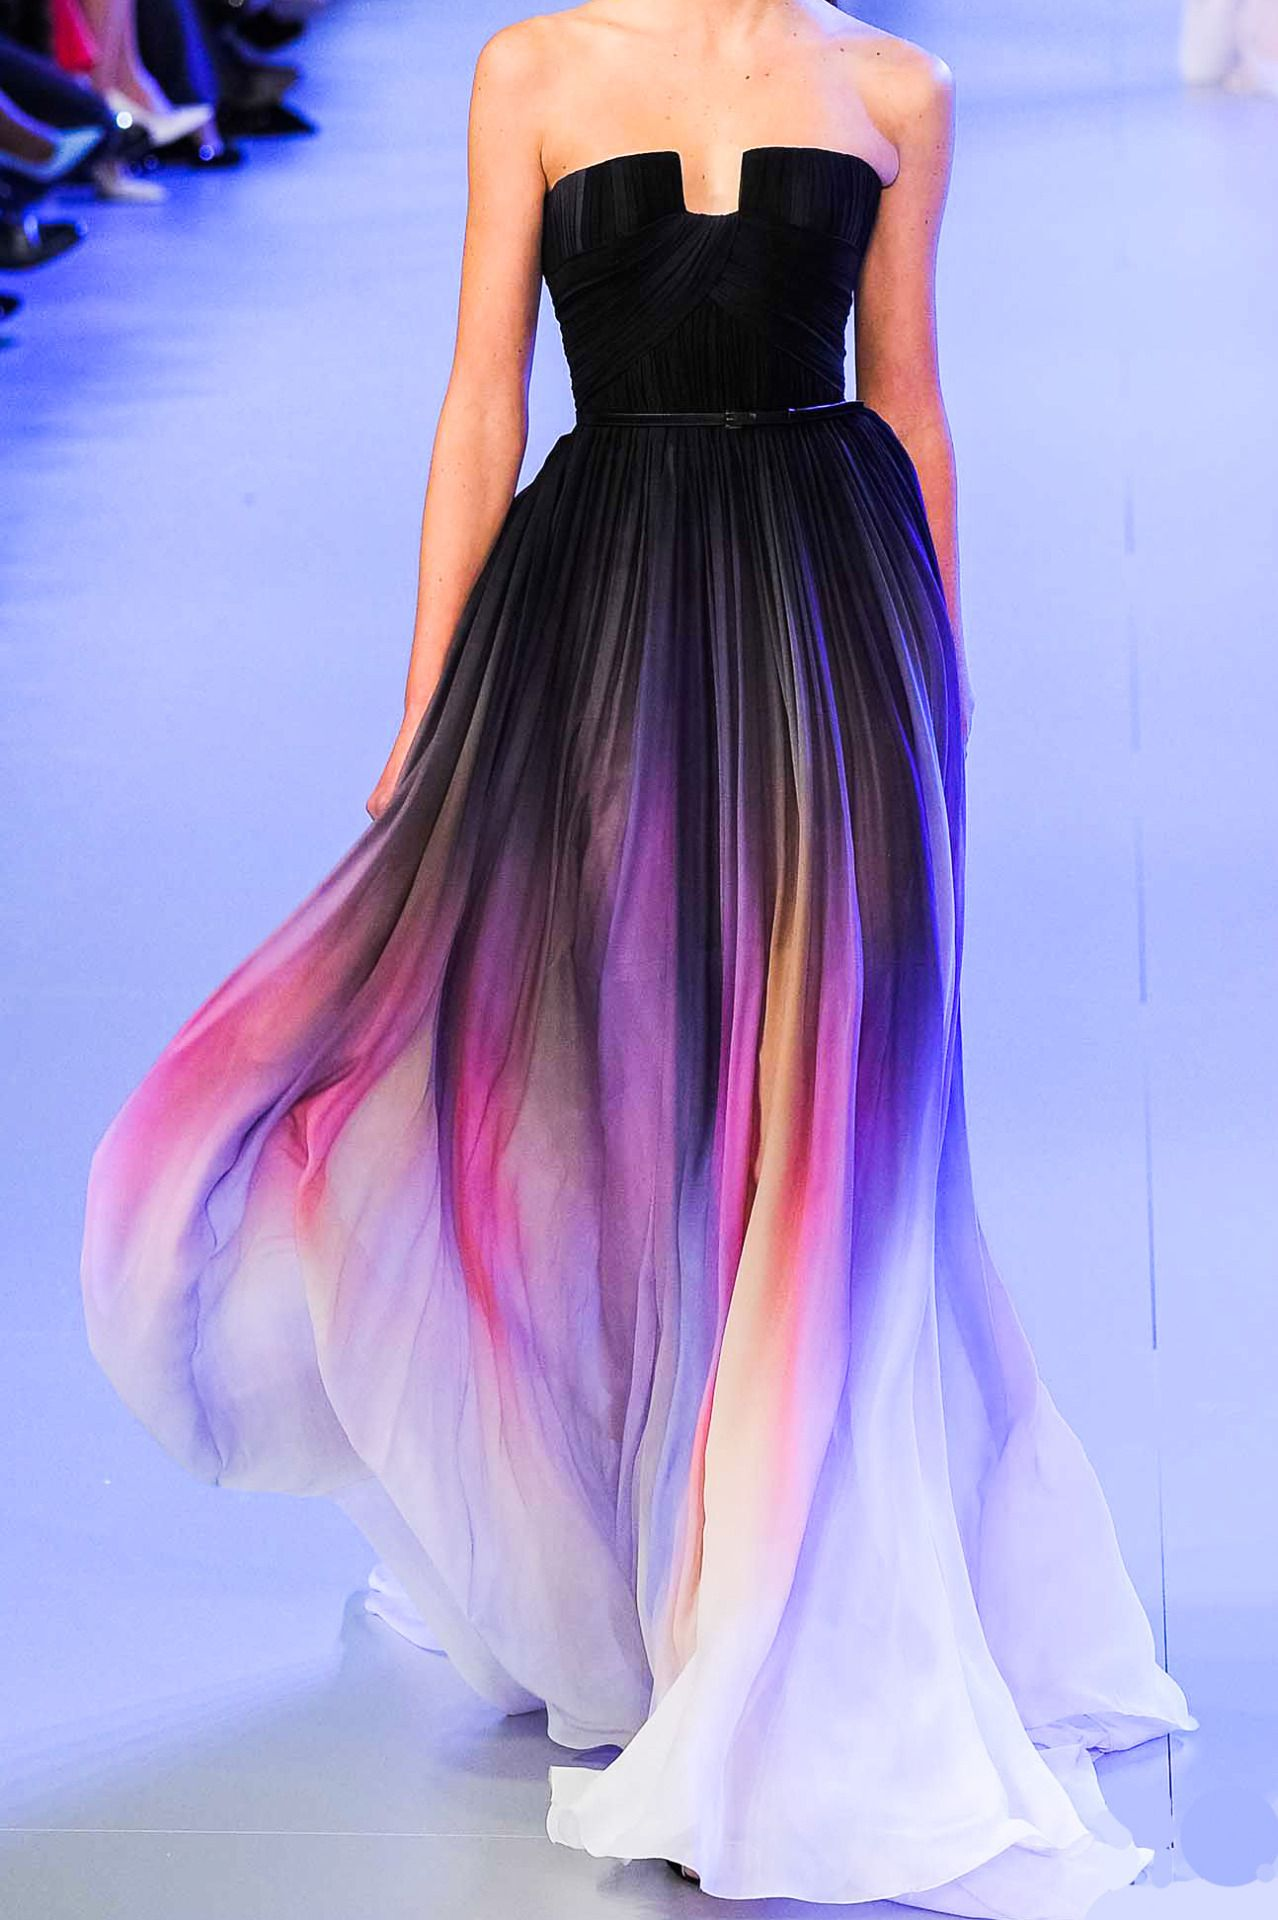 Stunning Dresses from Monique Lhuillier | Monique lhuillier, Ombre ...